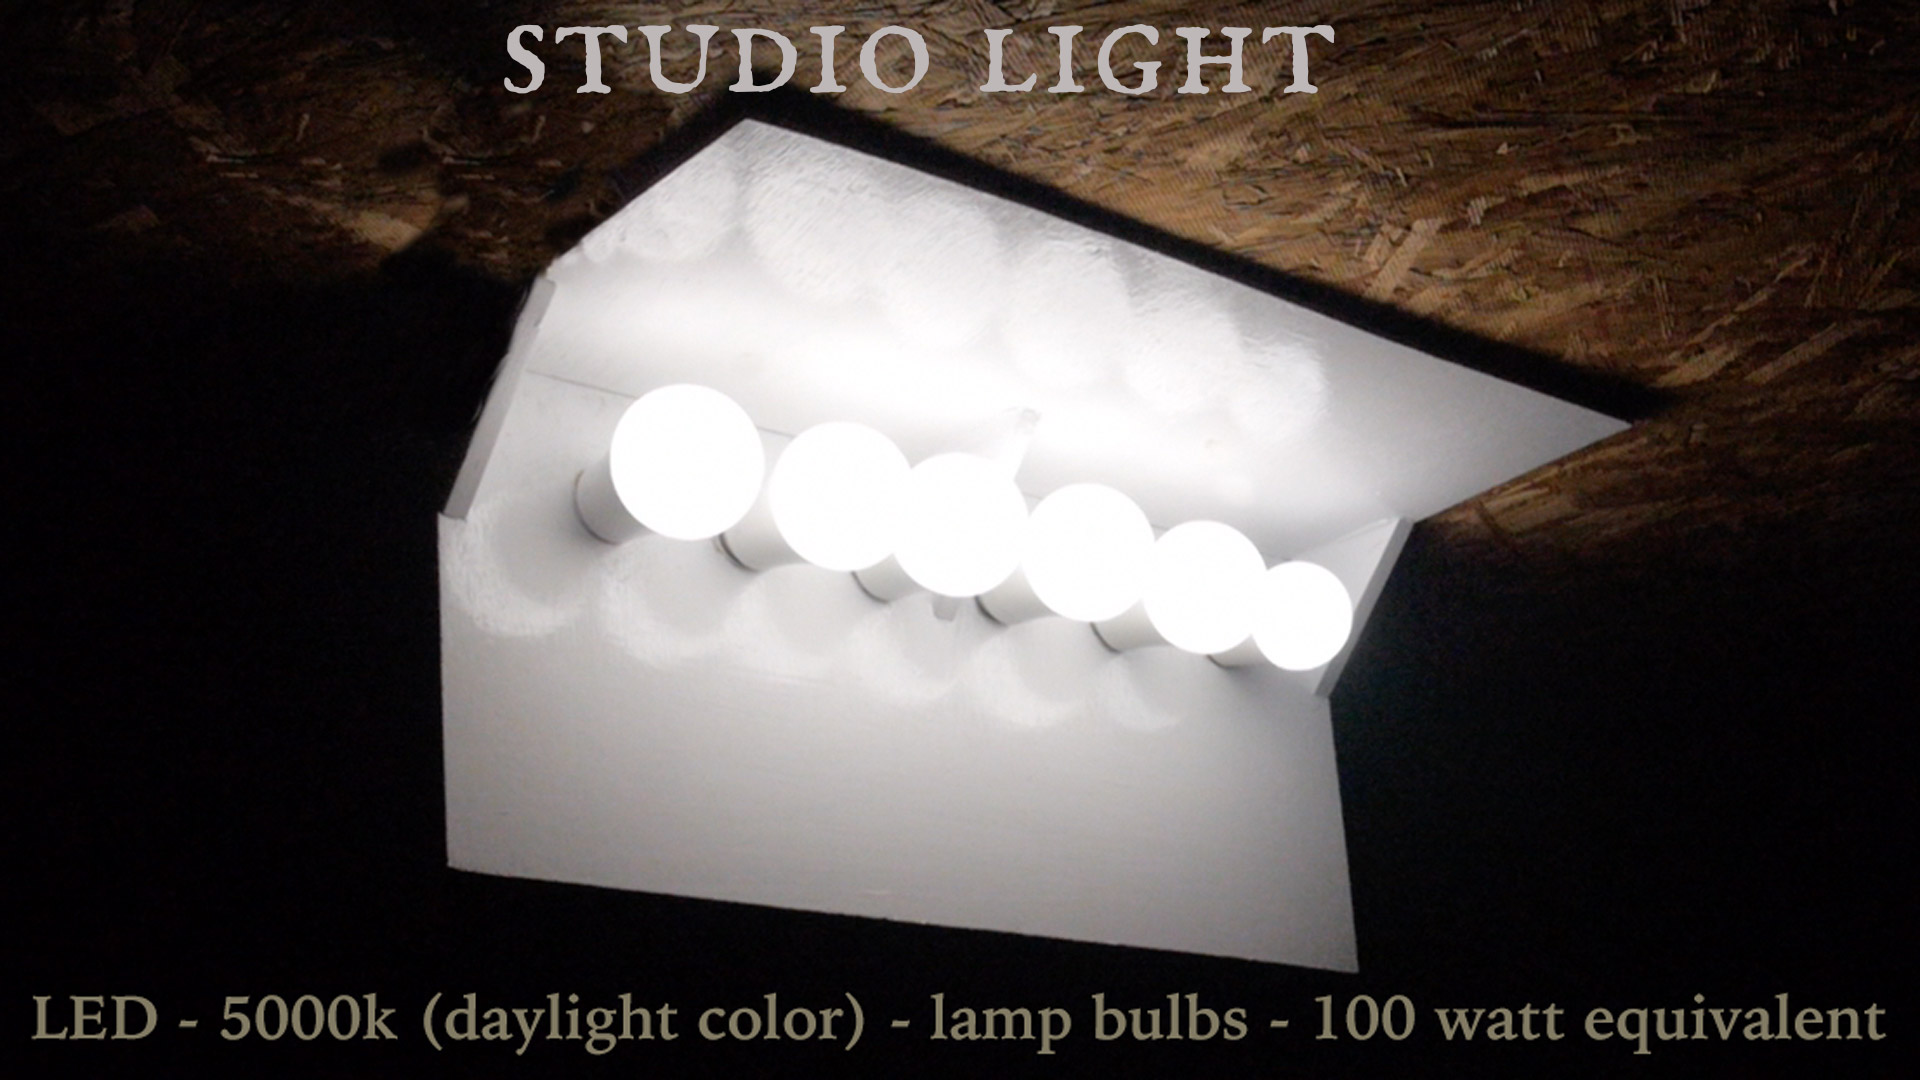 Best Studio Light for Artists